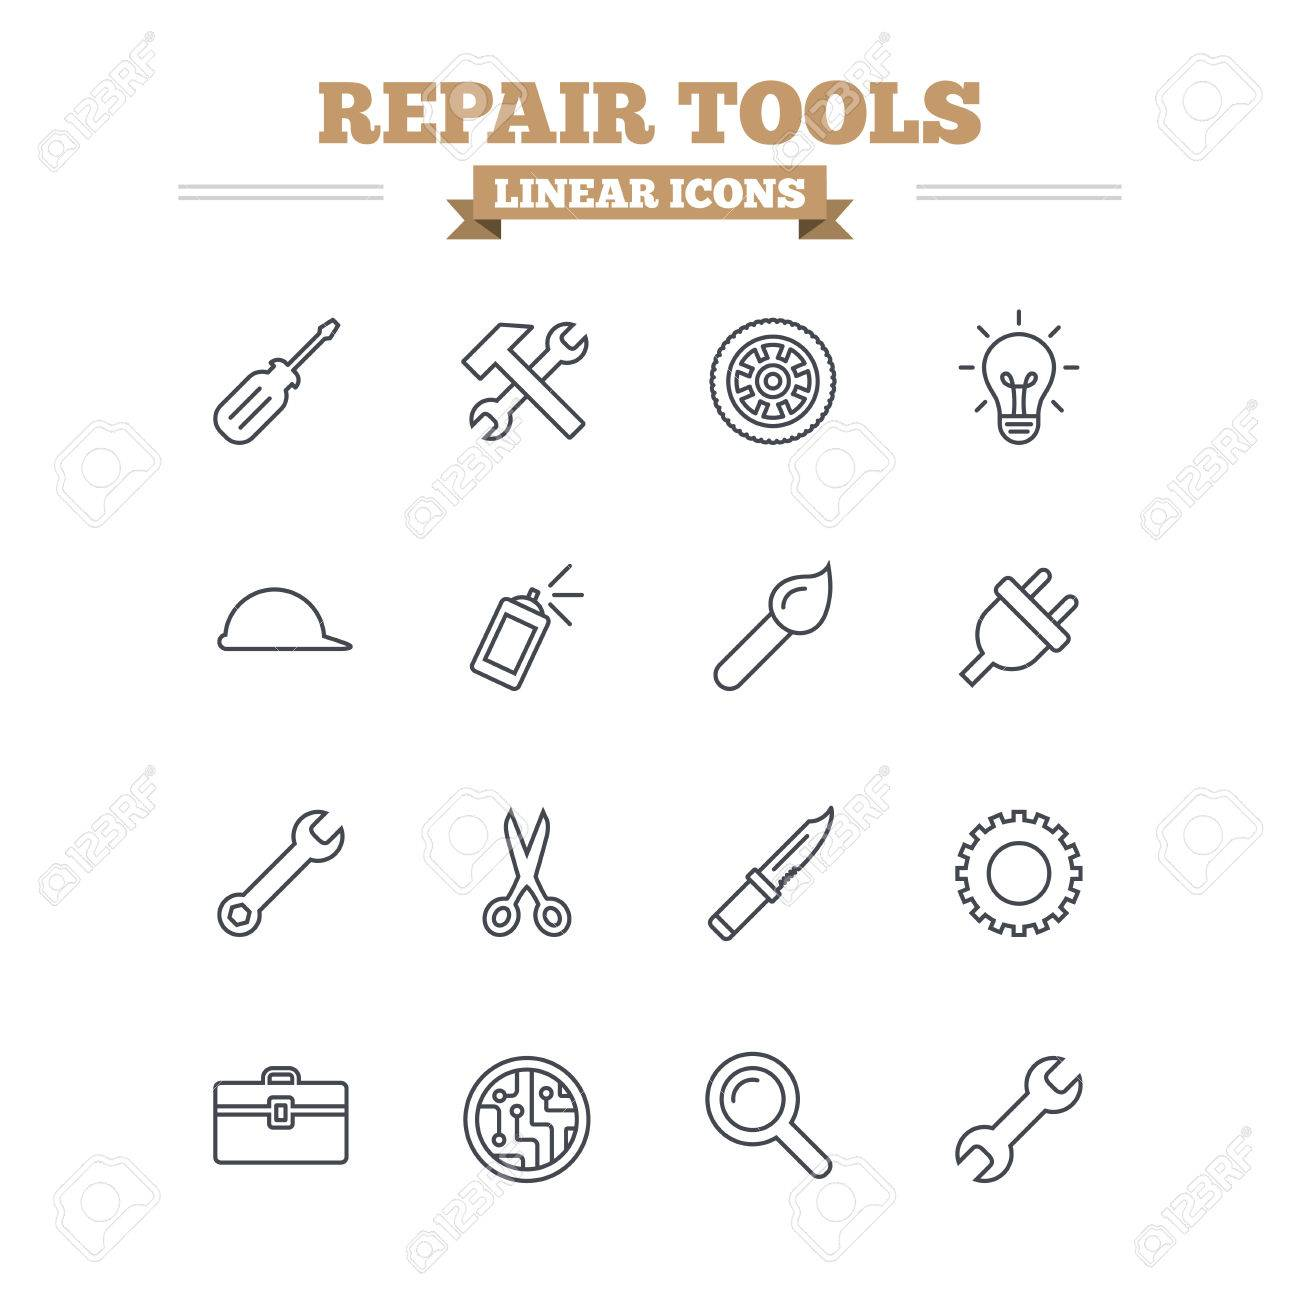 Repair Tools Linear Icons Set Hammer With Wrench Key Wheel And Circuit Board Brush Screwdriver